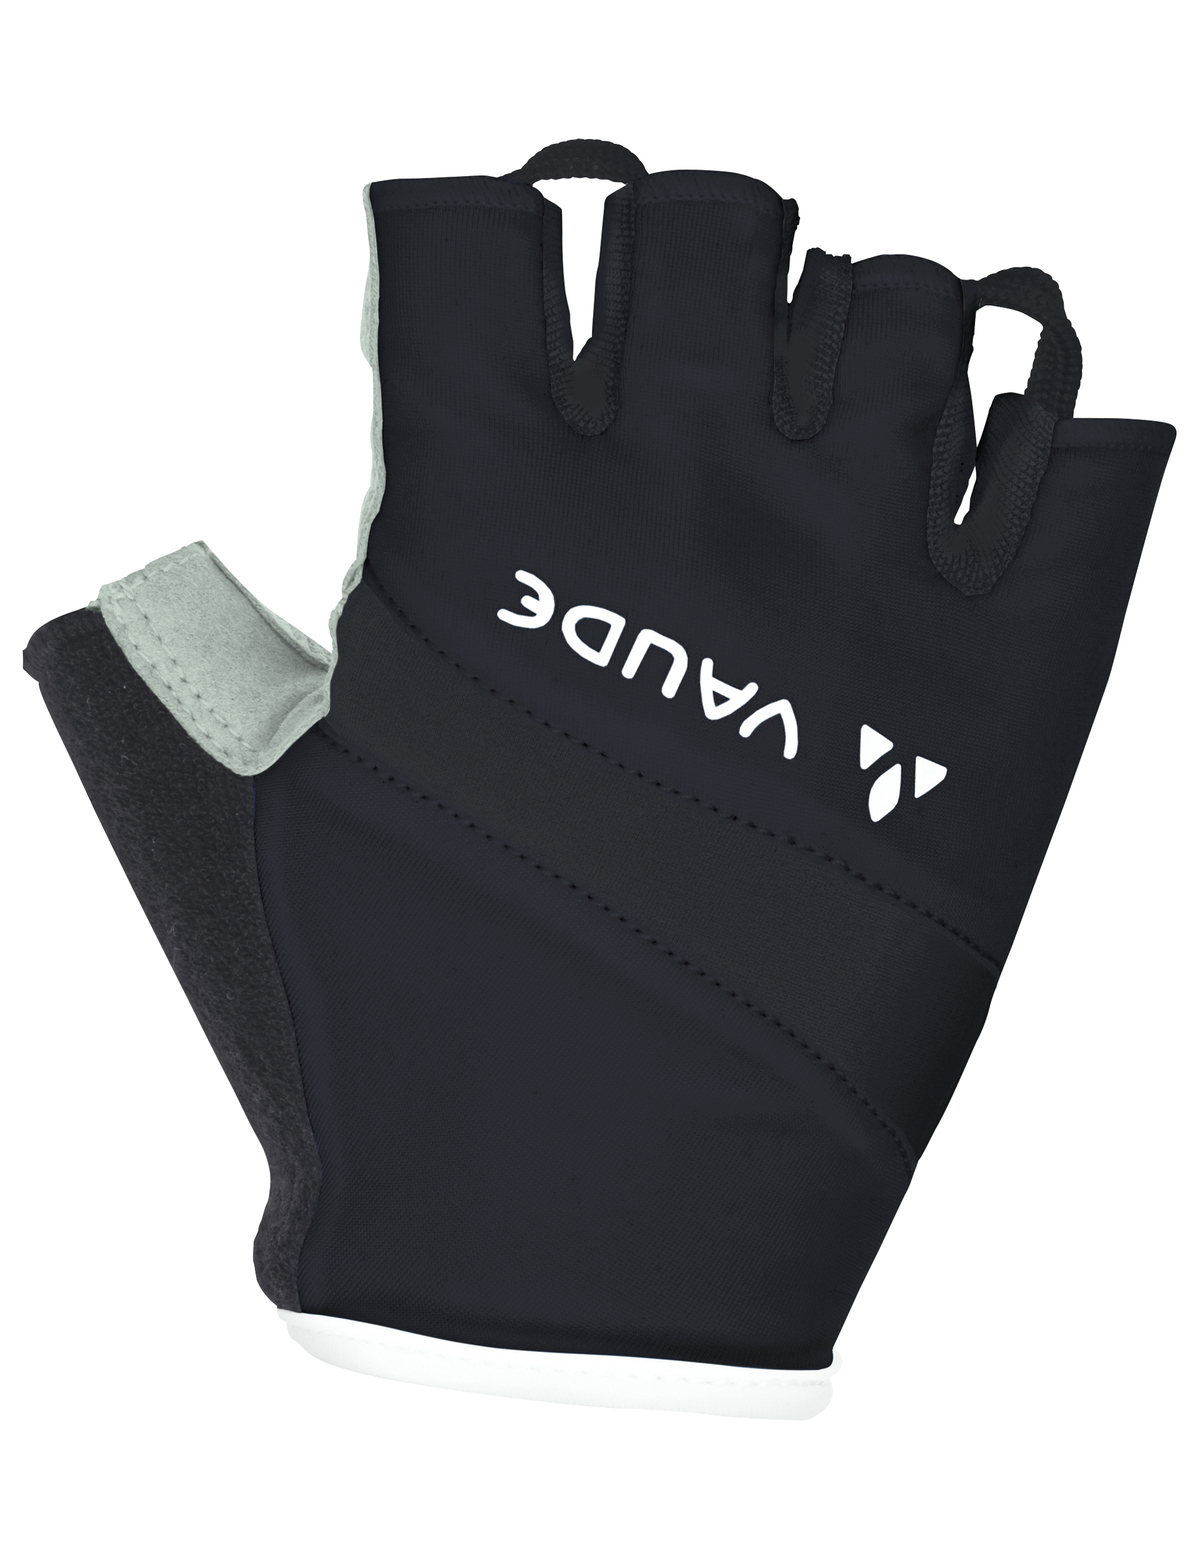 VAUDE Women´s Active Gloves black Größe 6 - schneider-sports